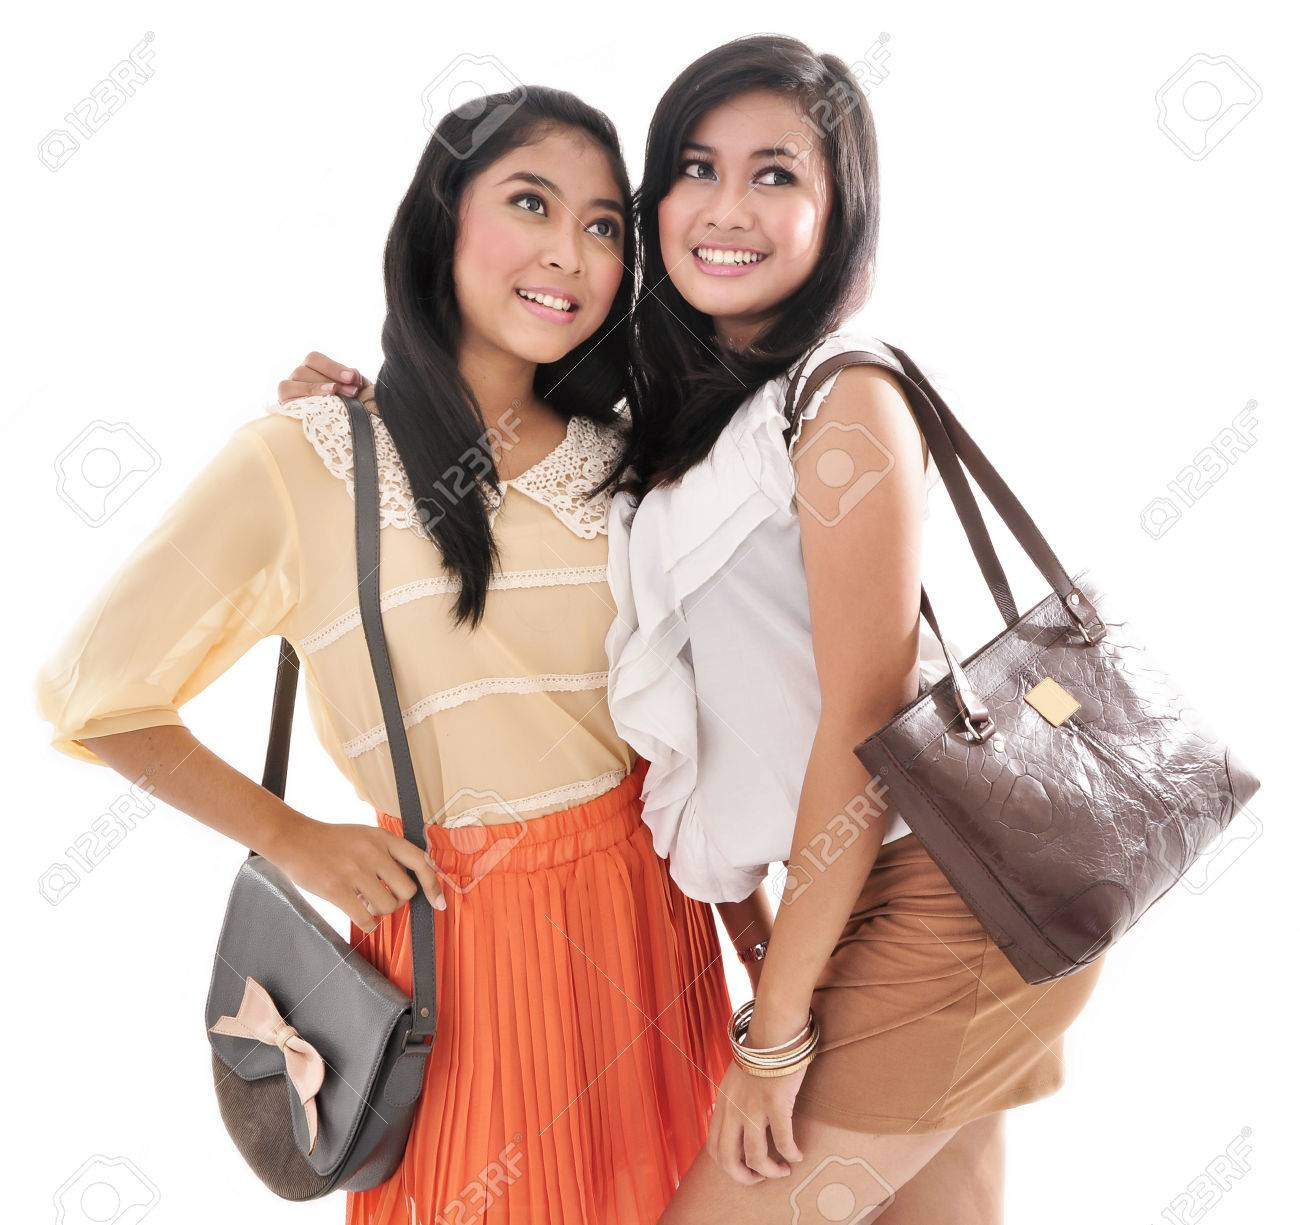 Stock Photo - Two girls best friend smiling and carrying bags 5f79ffd13007